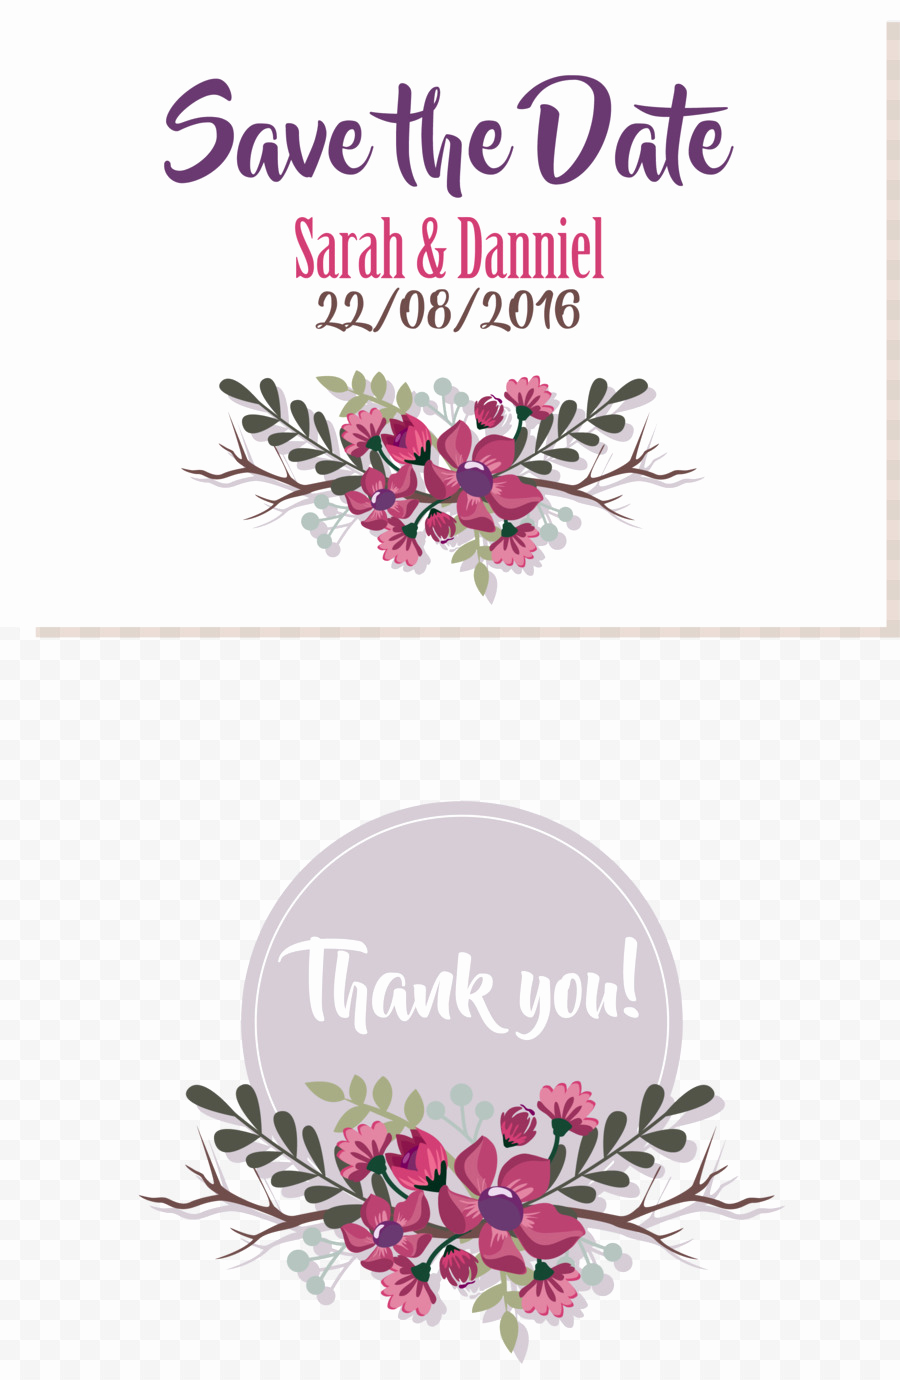 Wedding Invitation Clip Arts New Wedding Invitation Save the Date Clip Art Vector Purple